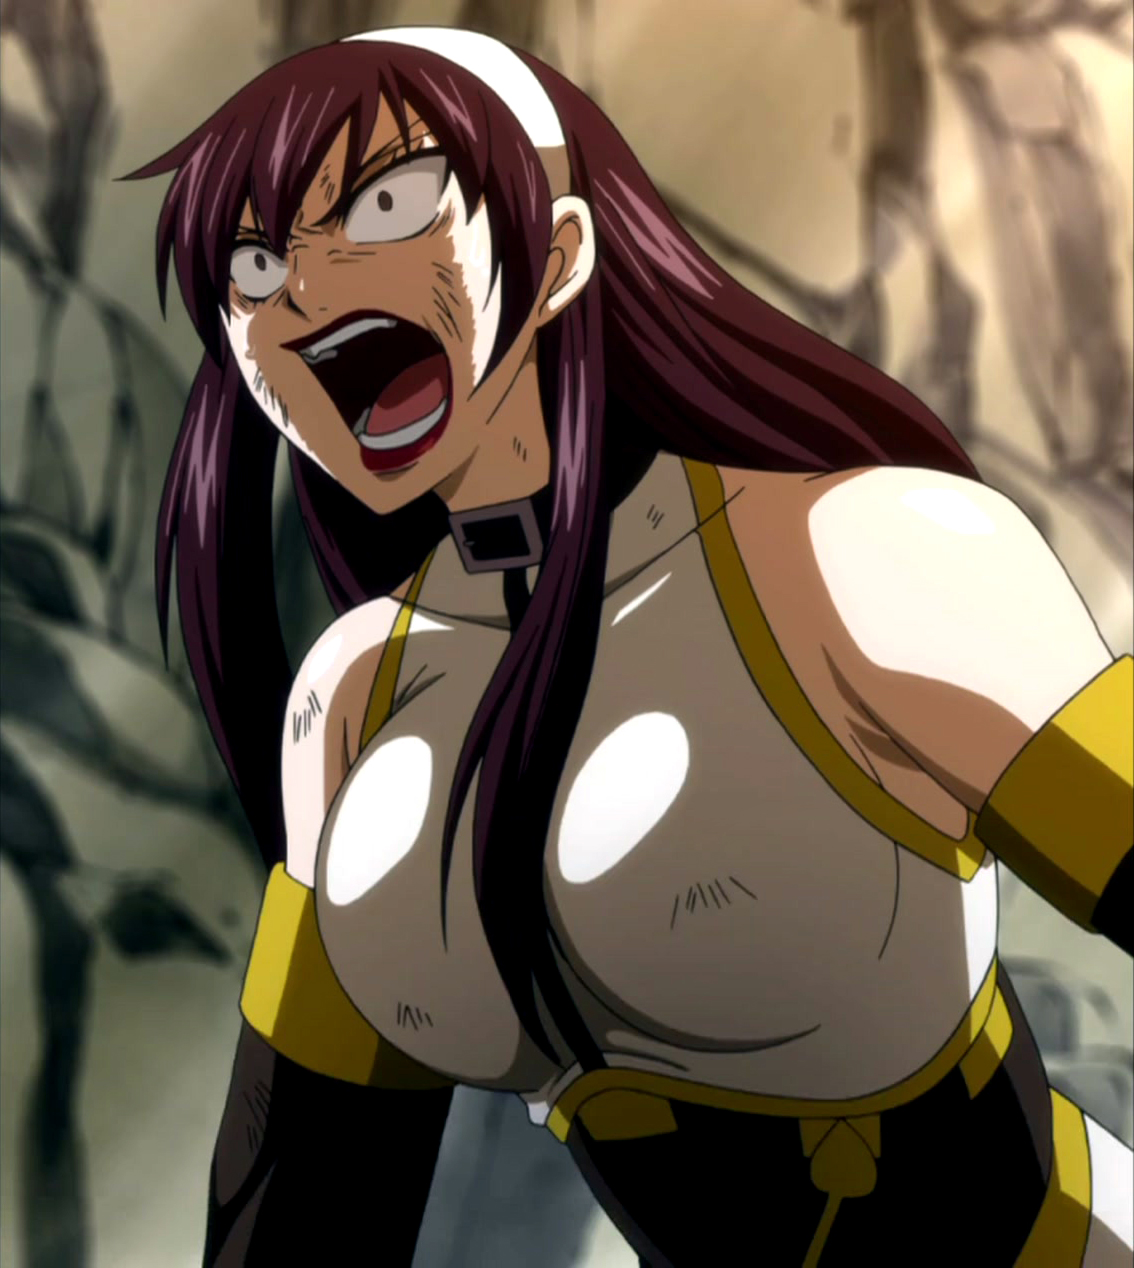 Zeref dragneel vs ultear milkovich fairy tail wiki the site for hiro mashima 39 s manga and - Fille fairy tail ...